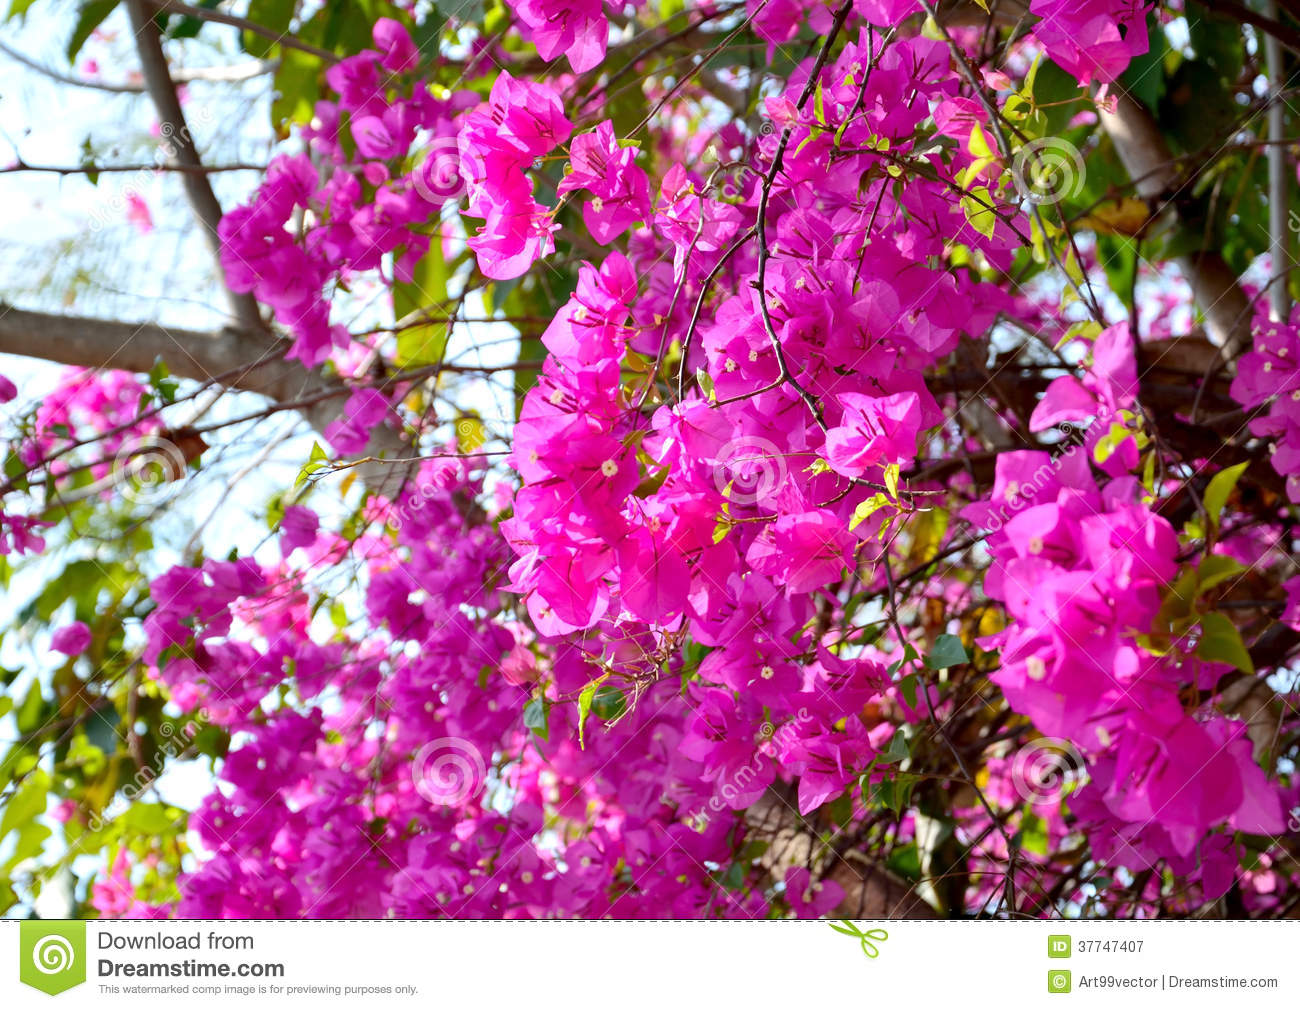 Flowers that bloom in the winter - Beautiful Bloom Bougainvillea Chiang Excitement Flowers